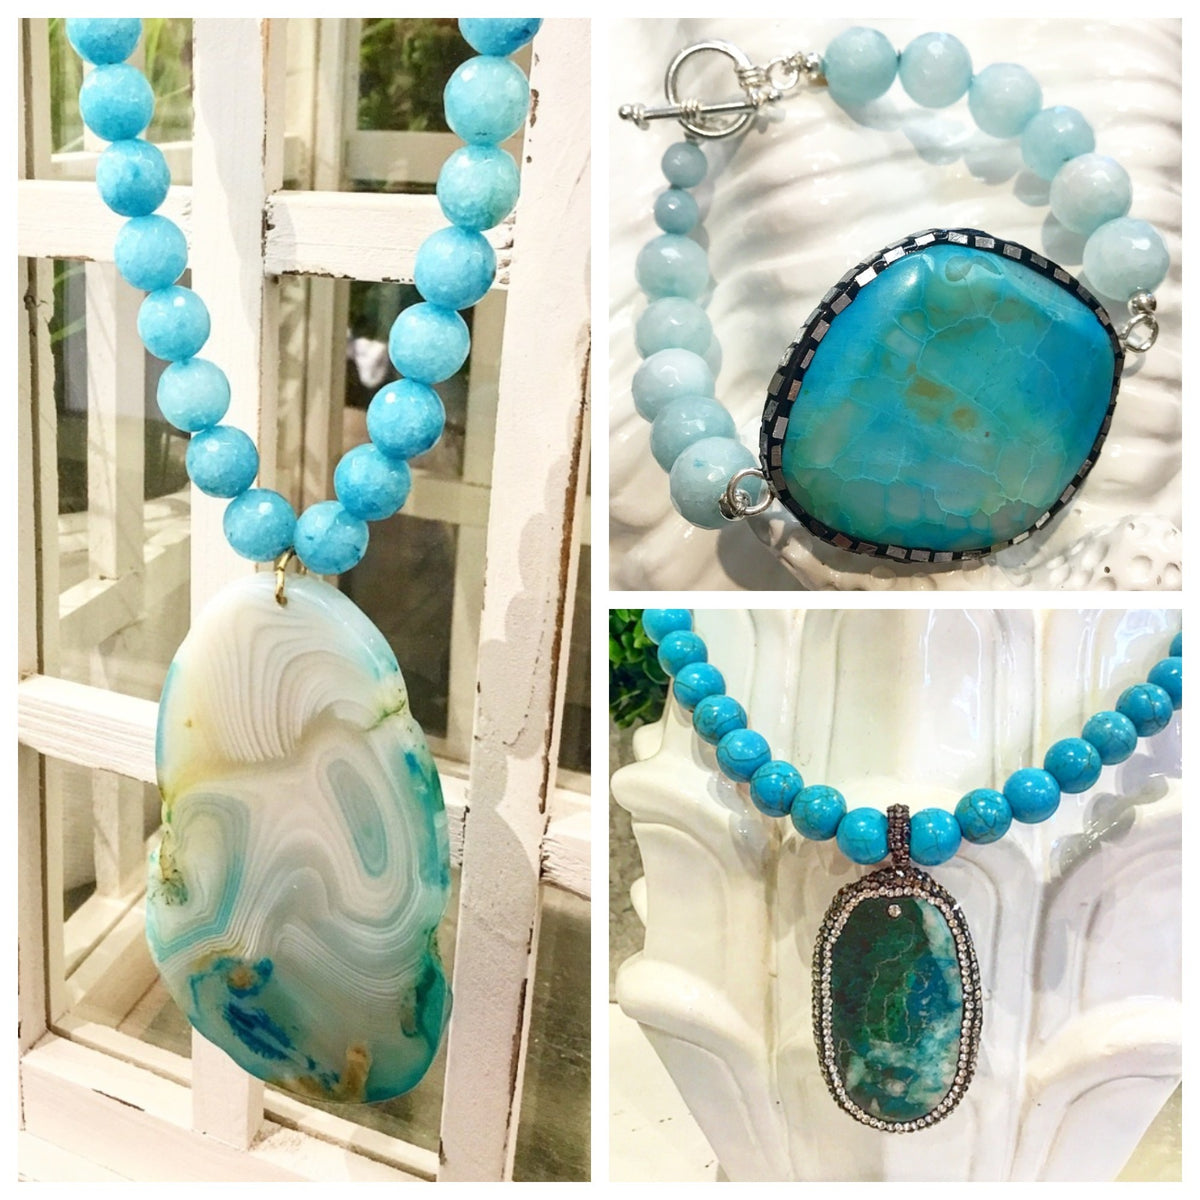 """Want It"" Wednesday: Gorgeous, Handmade Ocean-Inspired Jewelry by Teramasu for Your One-of-a-Kind Style"